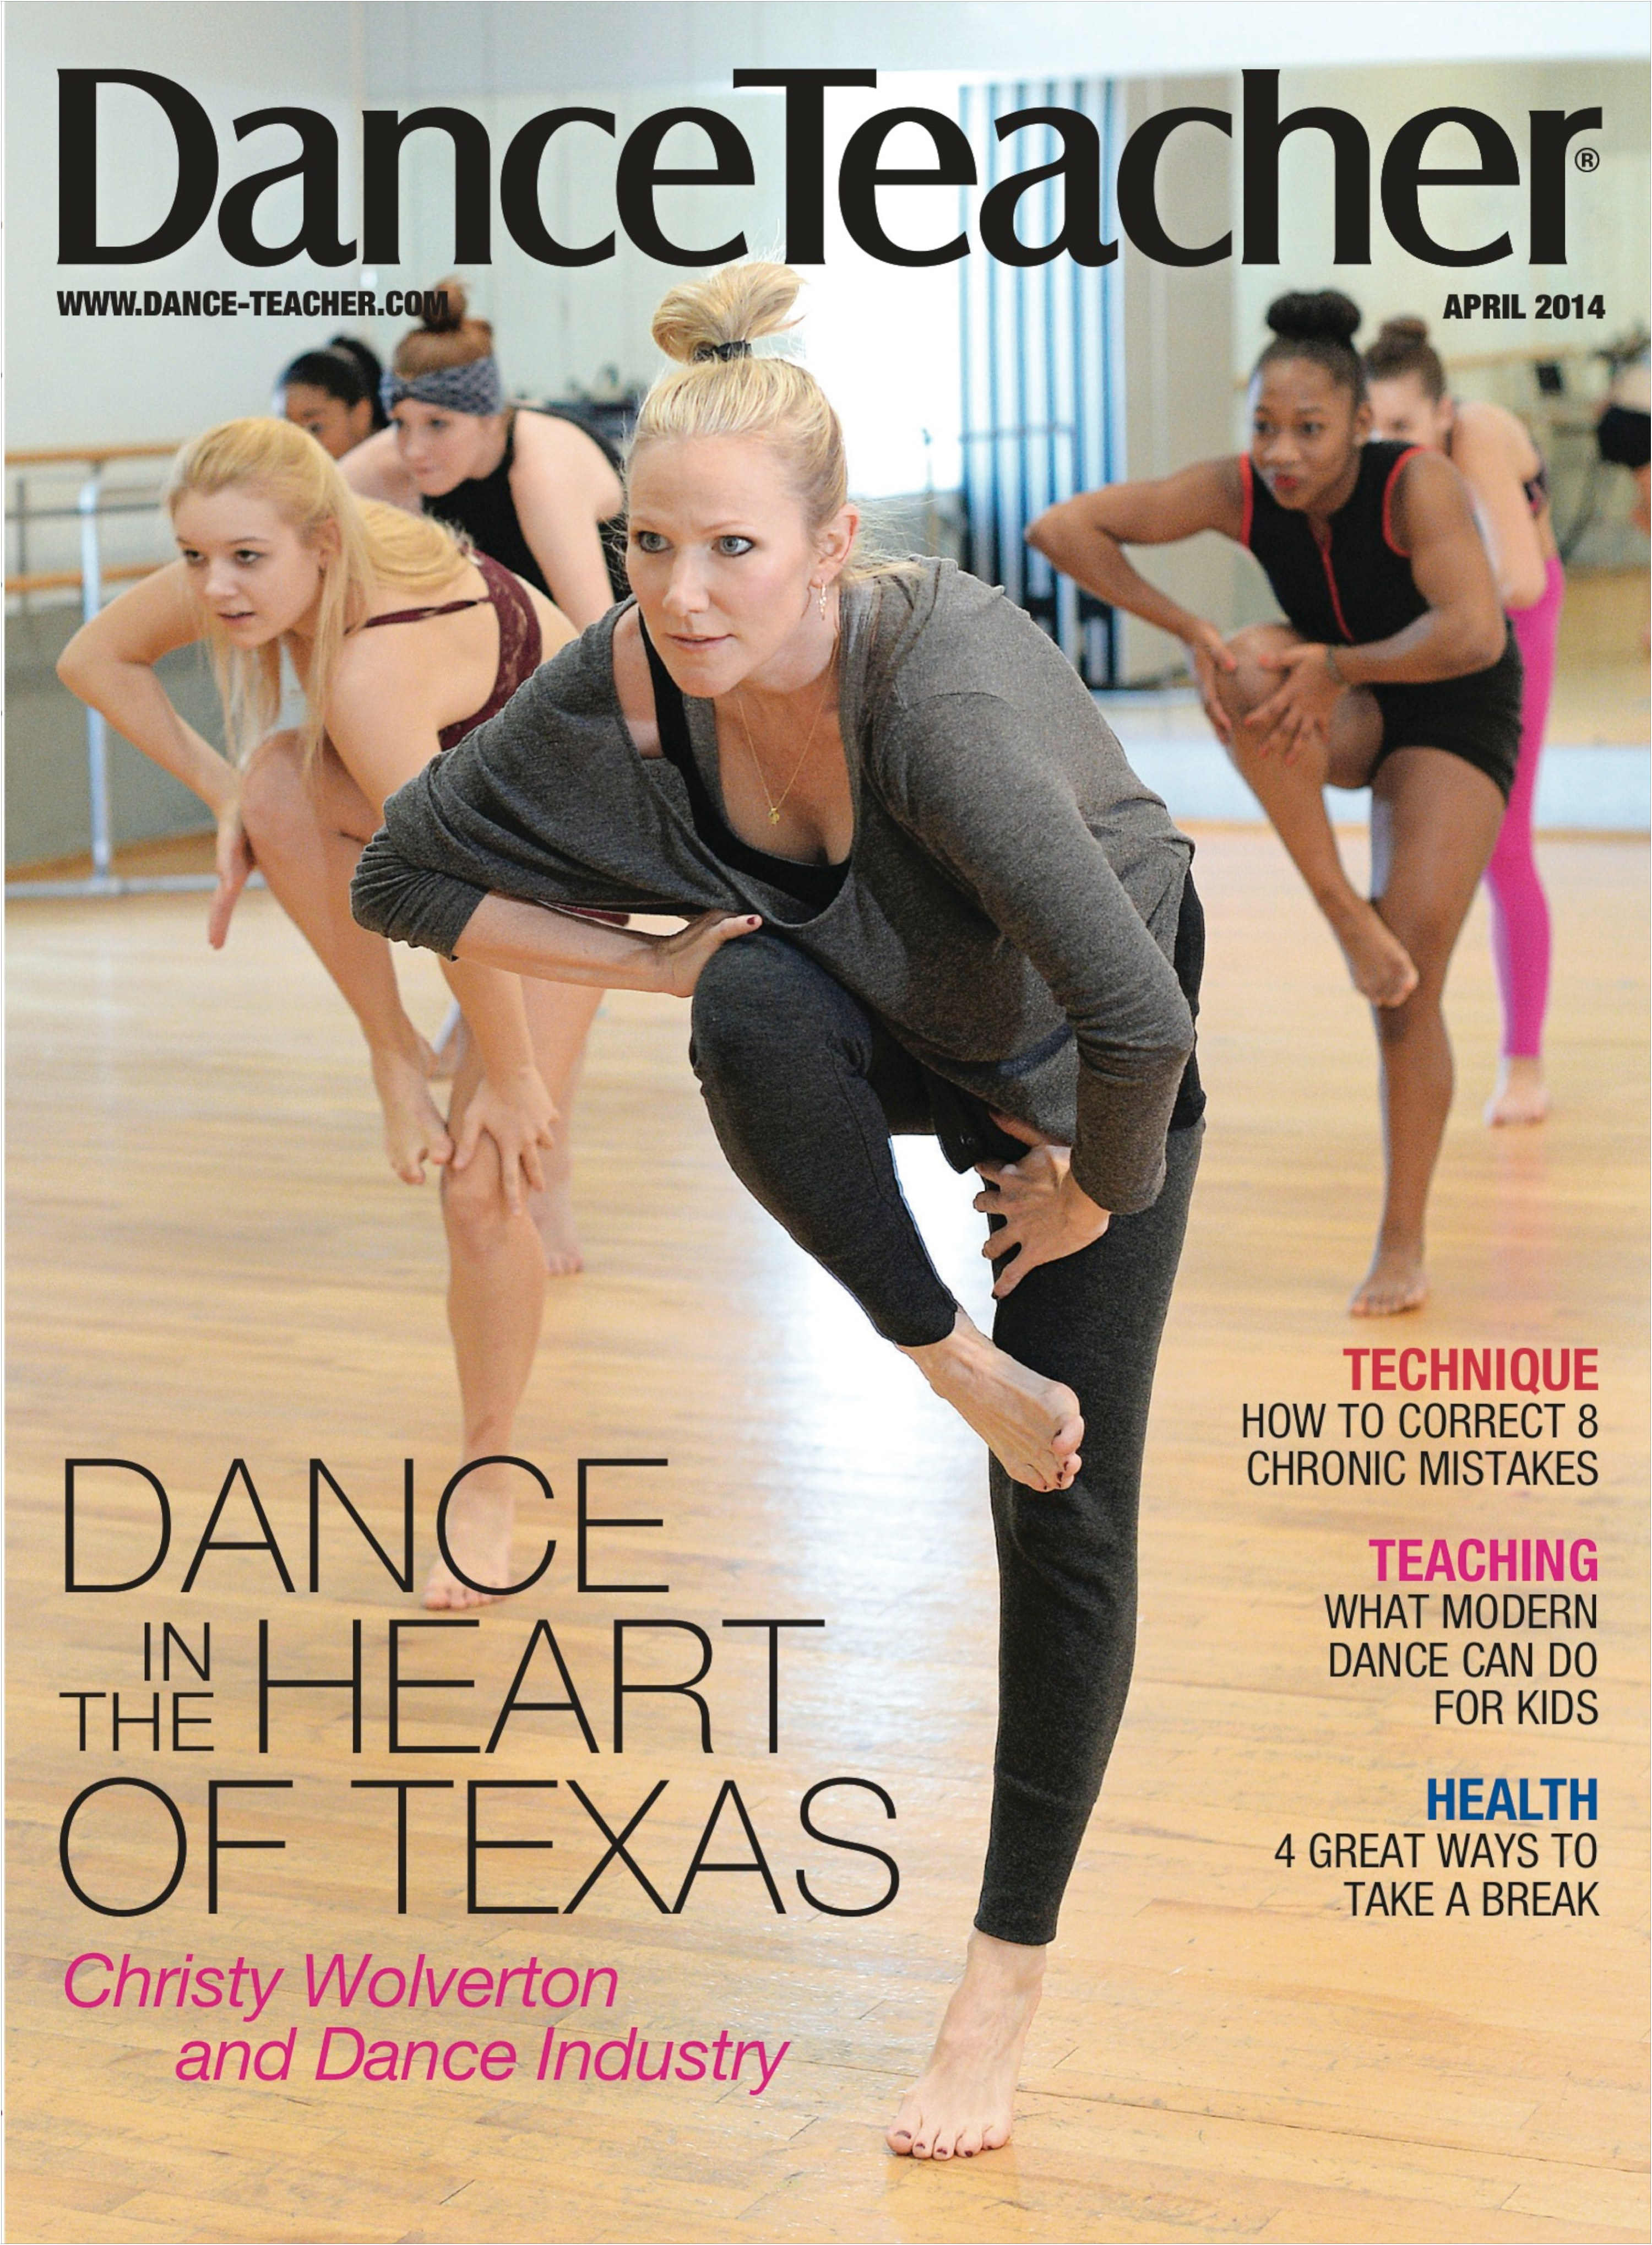 Dance Journals and Magazines - Dance - Subject Guides at Brigham ...